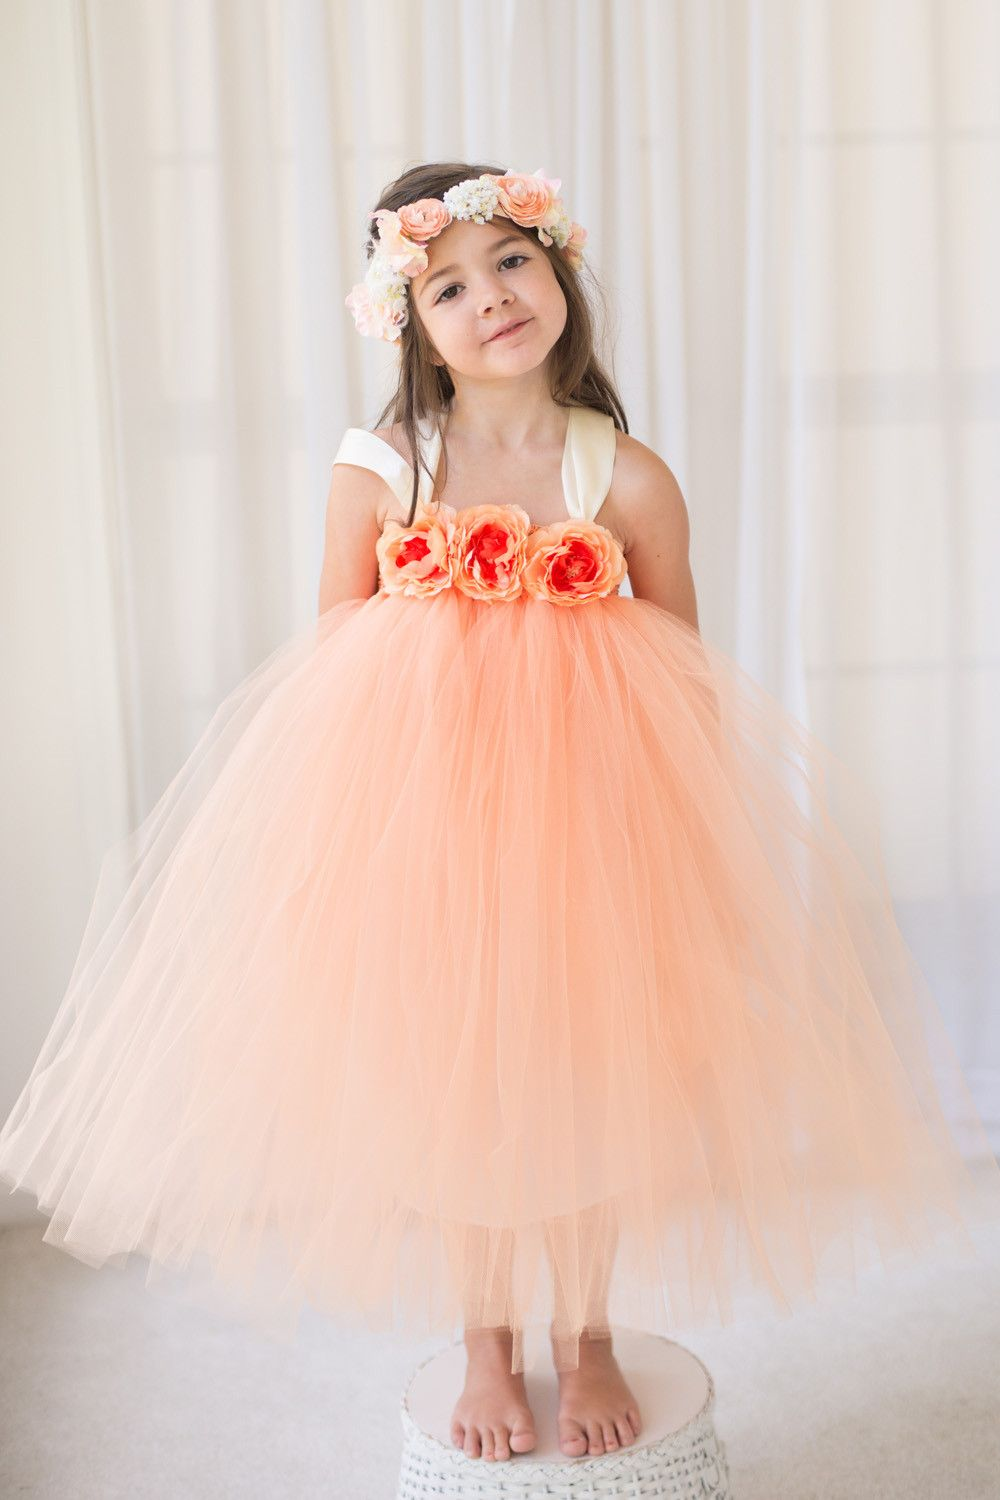 Strap dusty orange pixie tutu dresses cheap popular flower girl strap dusty orange pixie tutu dresses cheap popular flower girl dressesjunior bridesmaid dresses fg113 izmirmasajfo